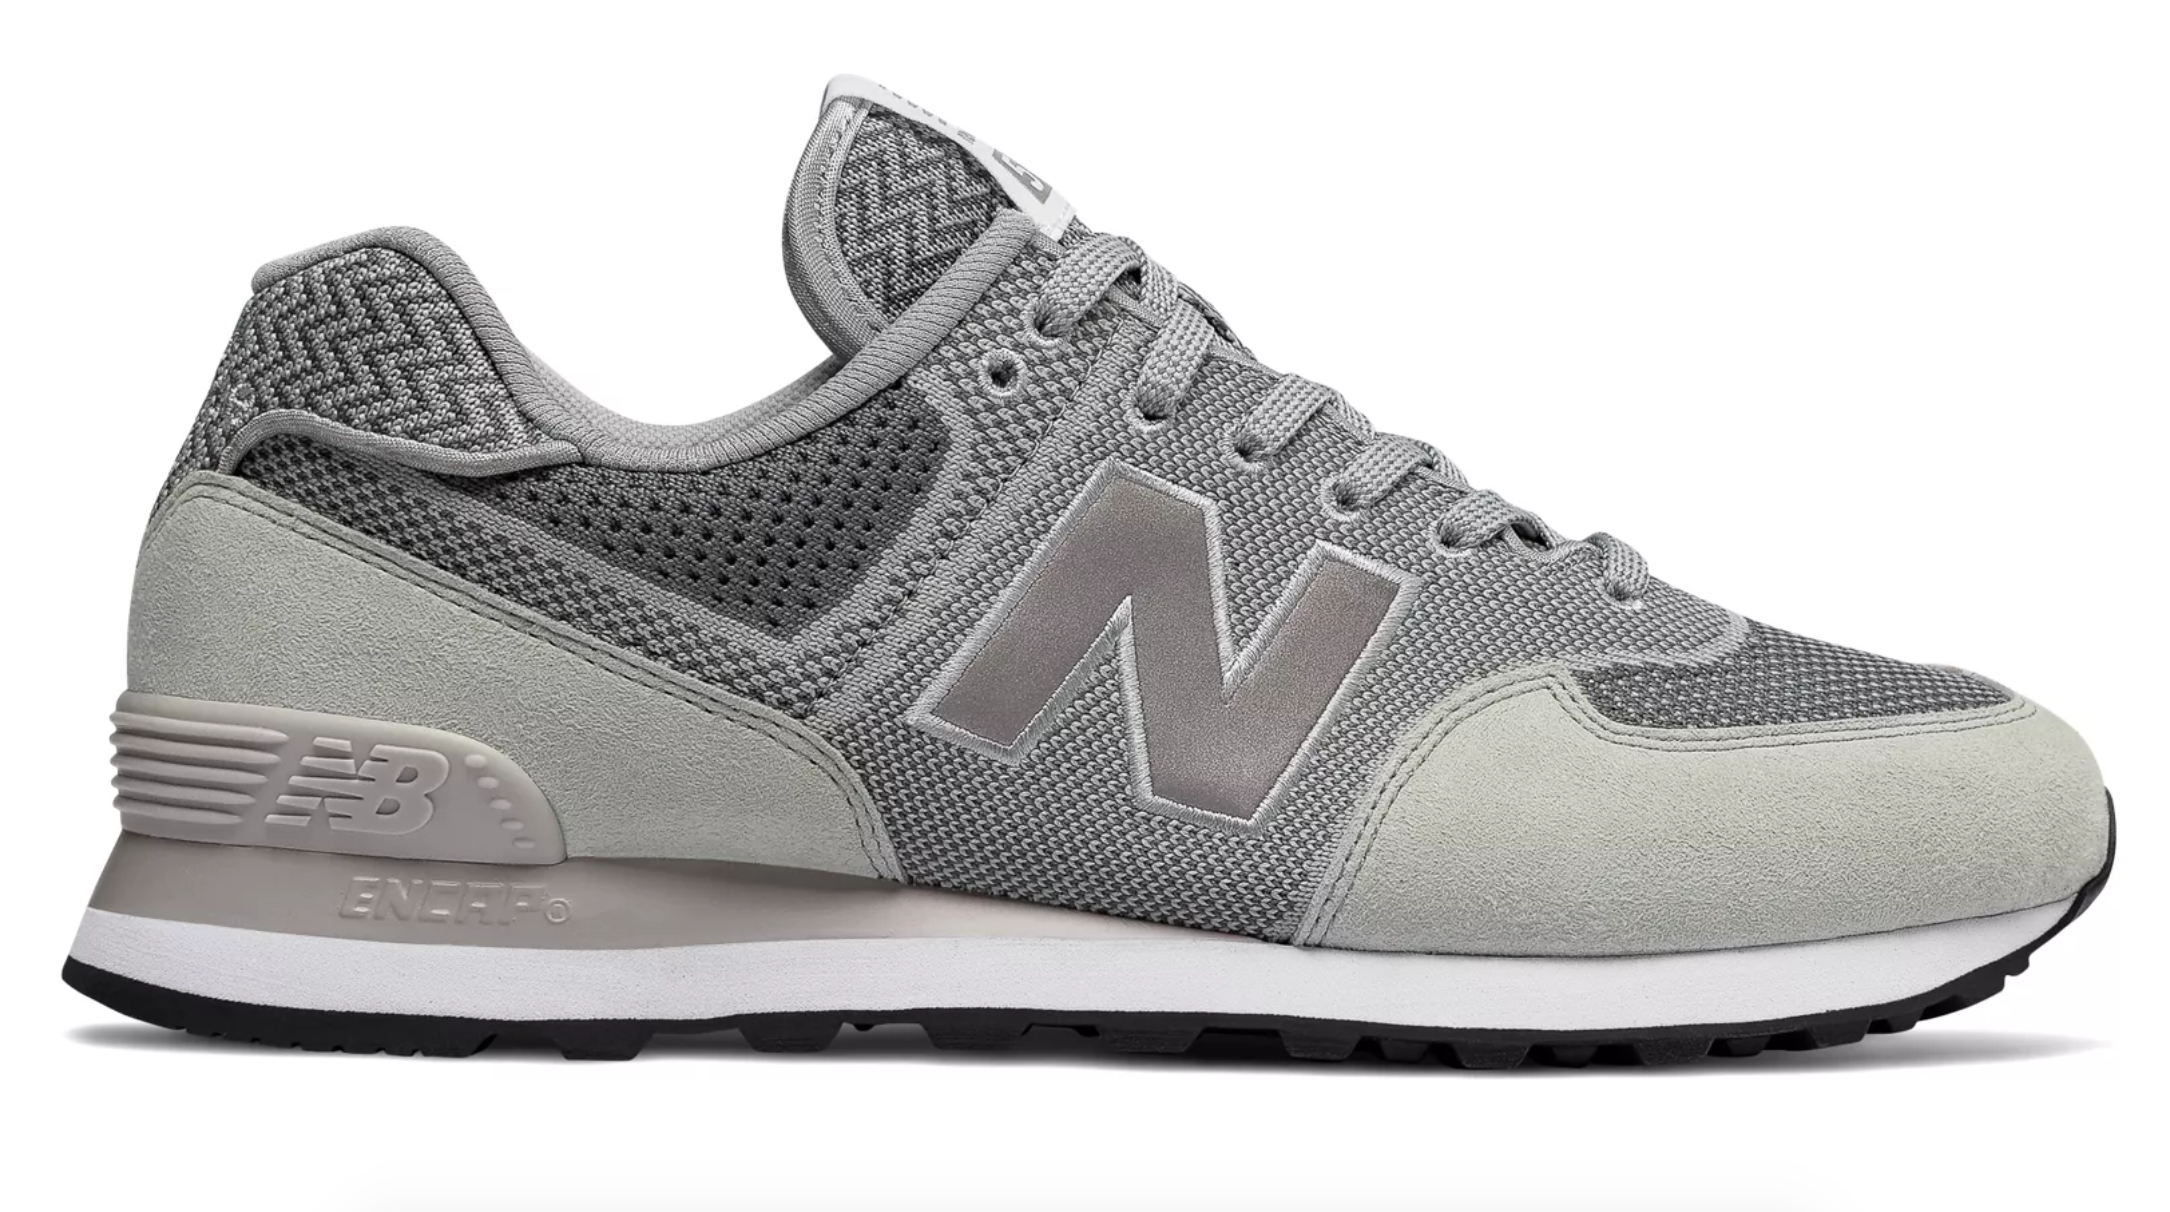 new concept 43e70 94fbc New Balance 574 Shoes - Latest Styles and Best Deals